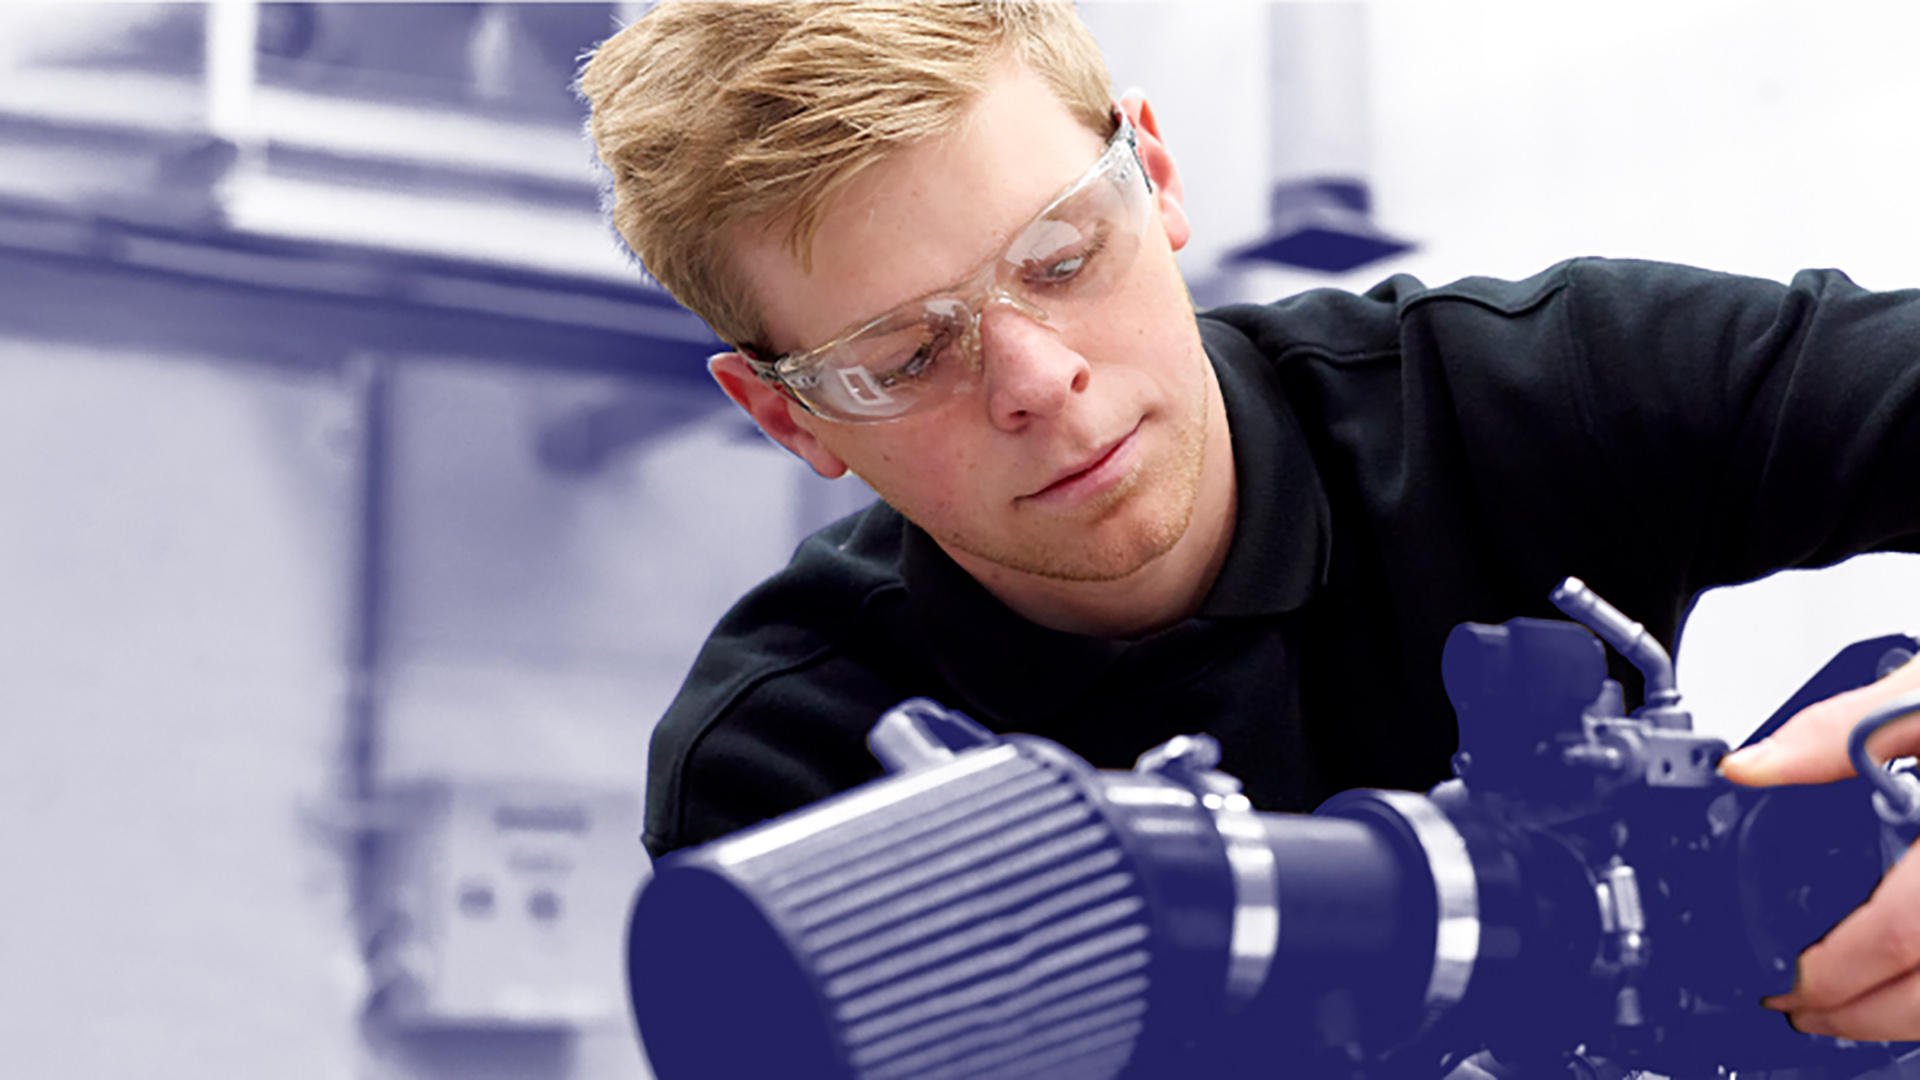 male student using science equipment wearing safely glasses